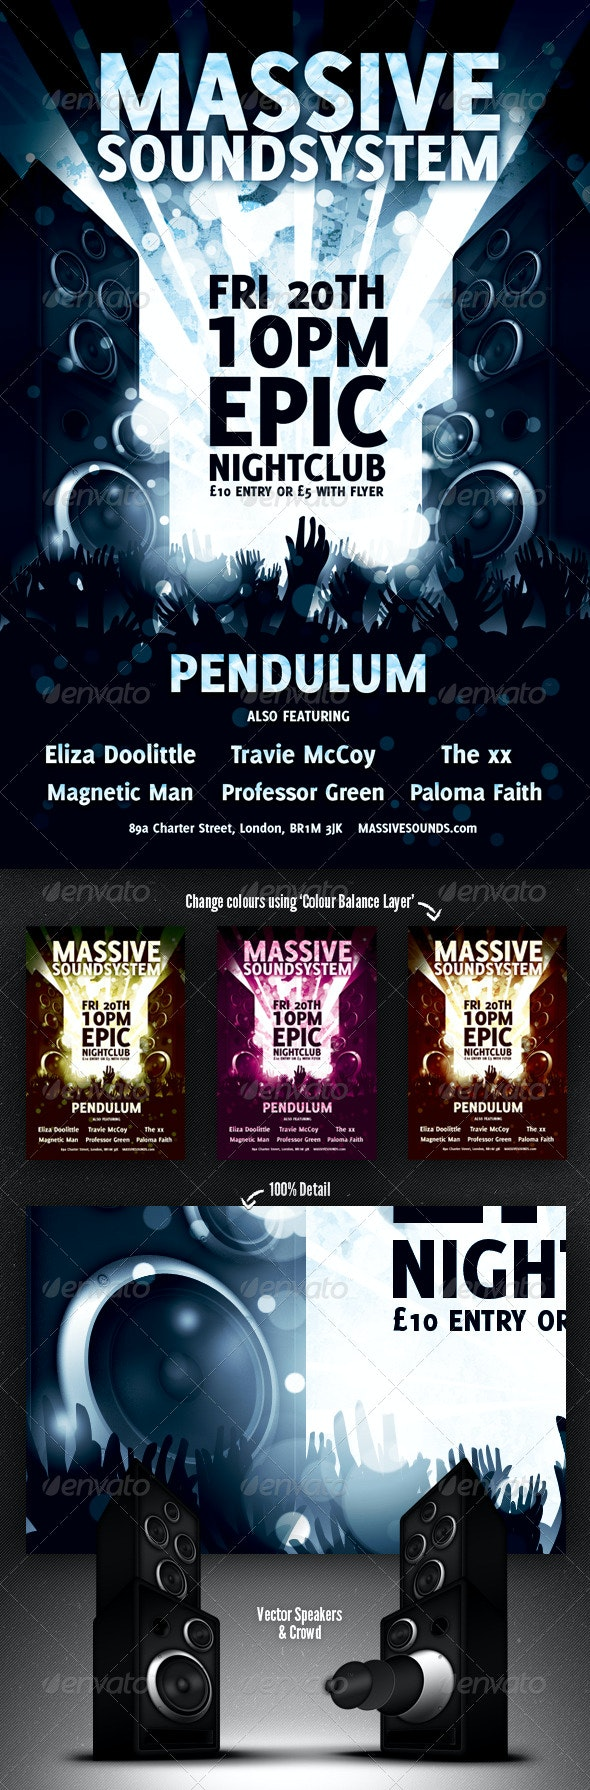 Nightclub Event Flyer - Clubs & Parties Events